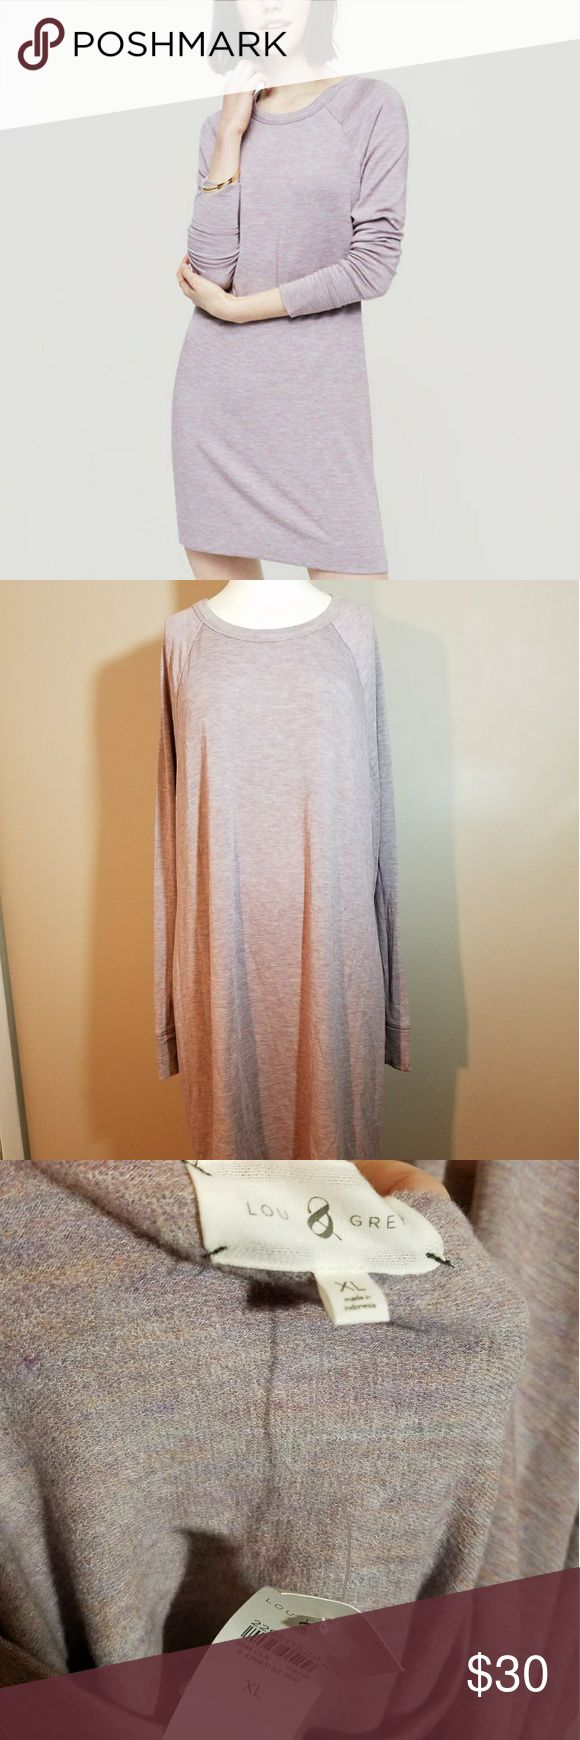 "Lou and Grey Signature soft Sweatshirt Dress Size XL. NWT. Amazingly soft.  21.5"" across chest,  41"" long. Purchased from Loft. Dress is slightly wrinkled. Lou & Grey Dresses Long Sleeve"